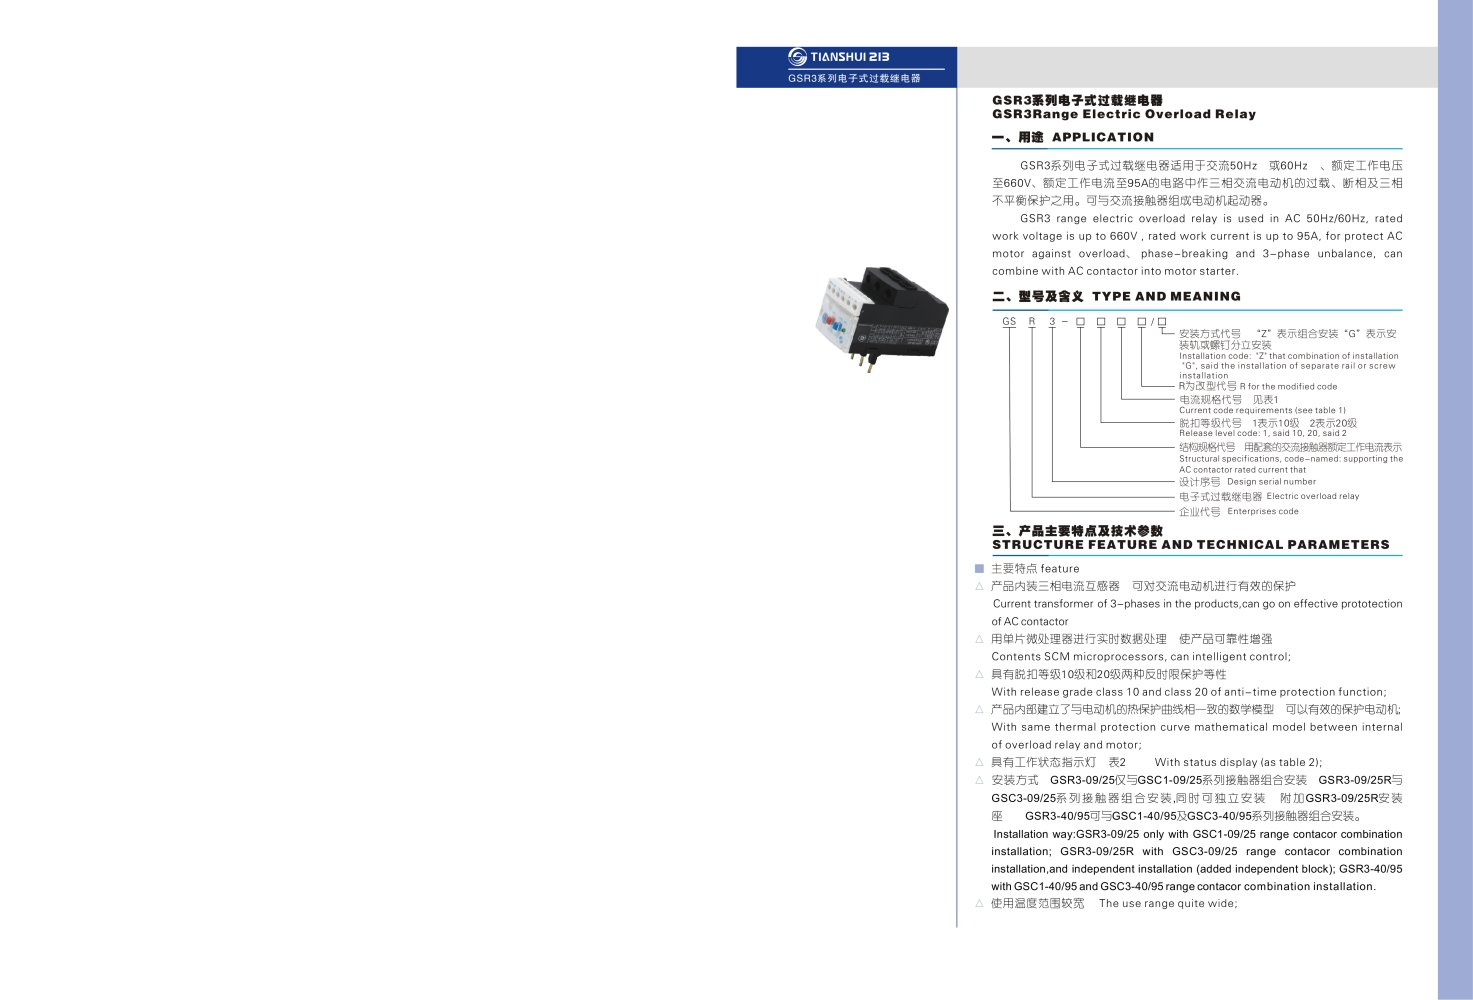 Relay Electrical Pdf Gsr3 Overload Tianshui 213 Apparatus 1 4 Pages